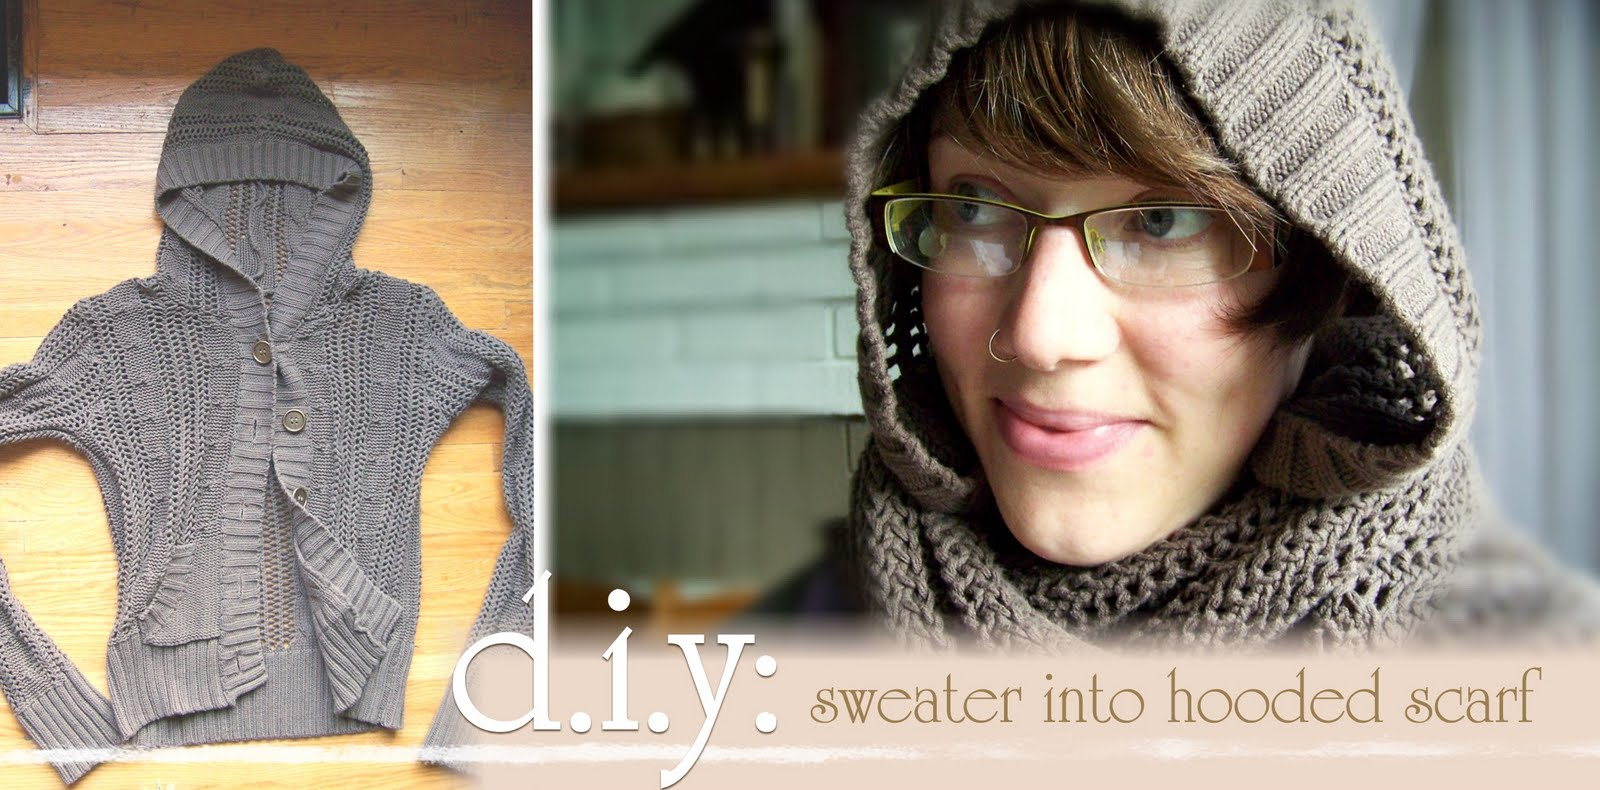 Needle And Nest Design D I Y Upcycle Your Sweater Into A Hooded Scarf